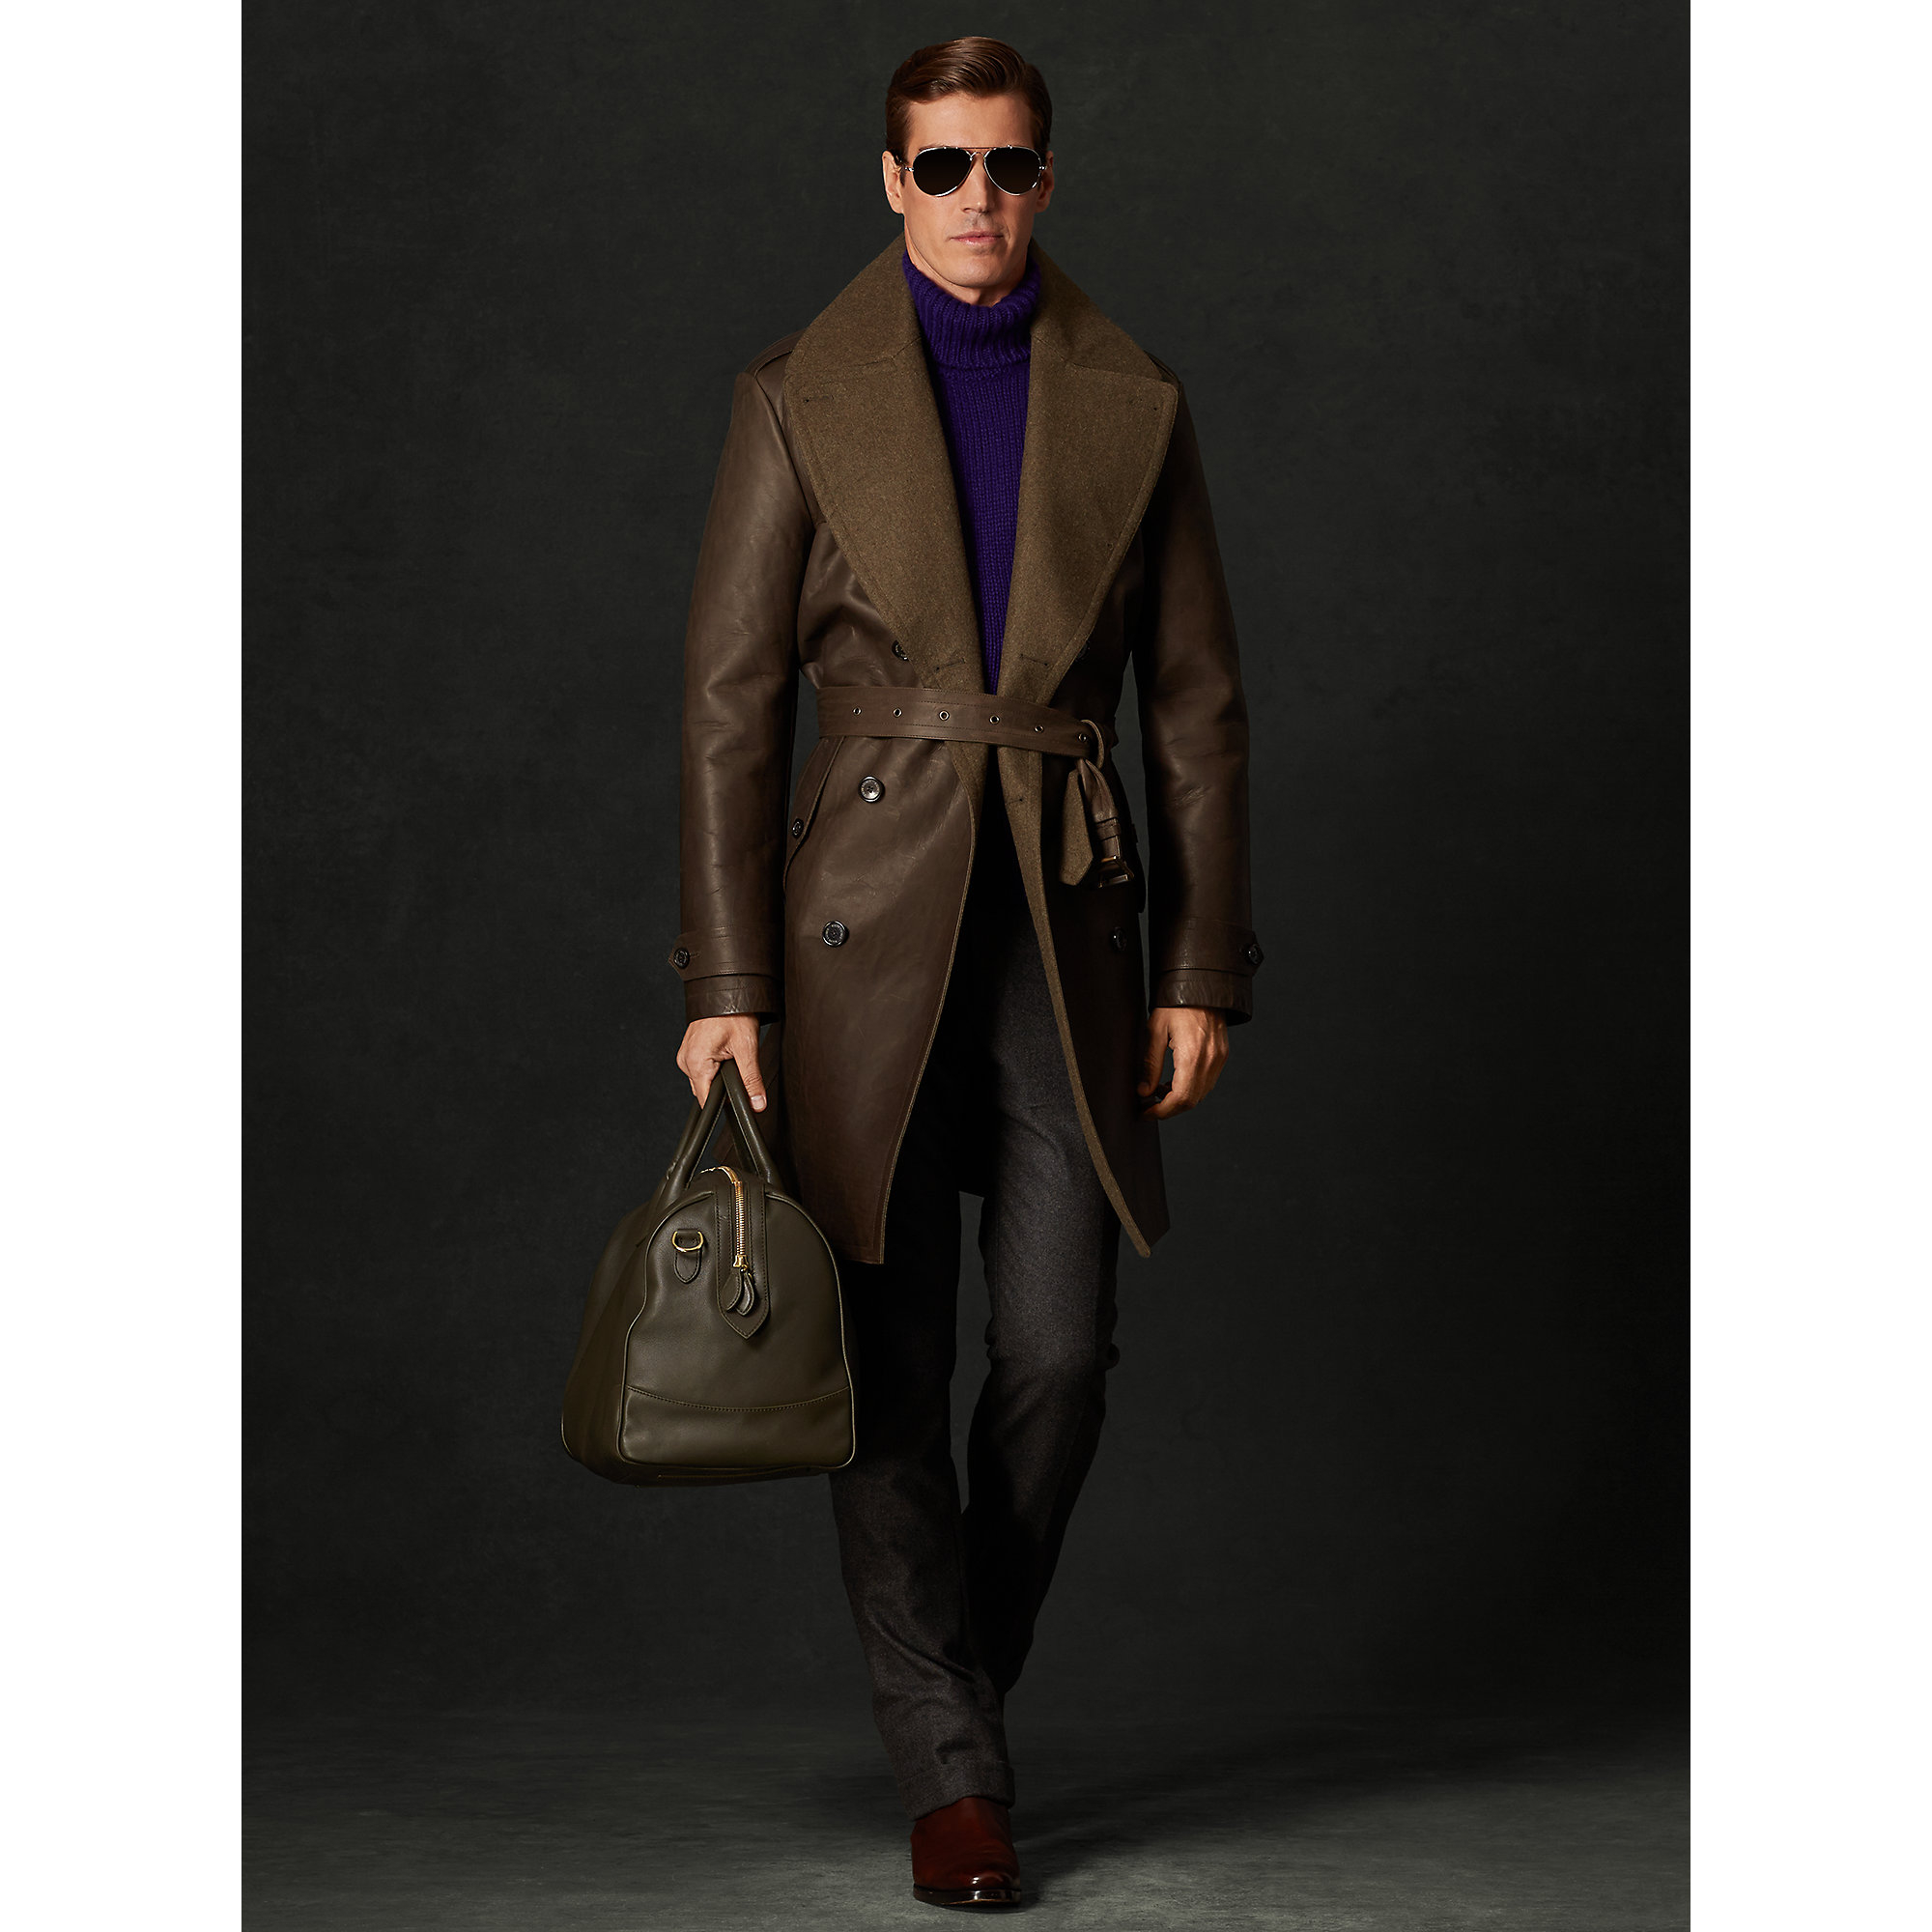 Lyst - Ralph Lauren Purple Label Leather Fairfax Trench Coat in Brown for Men